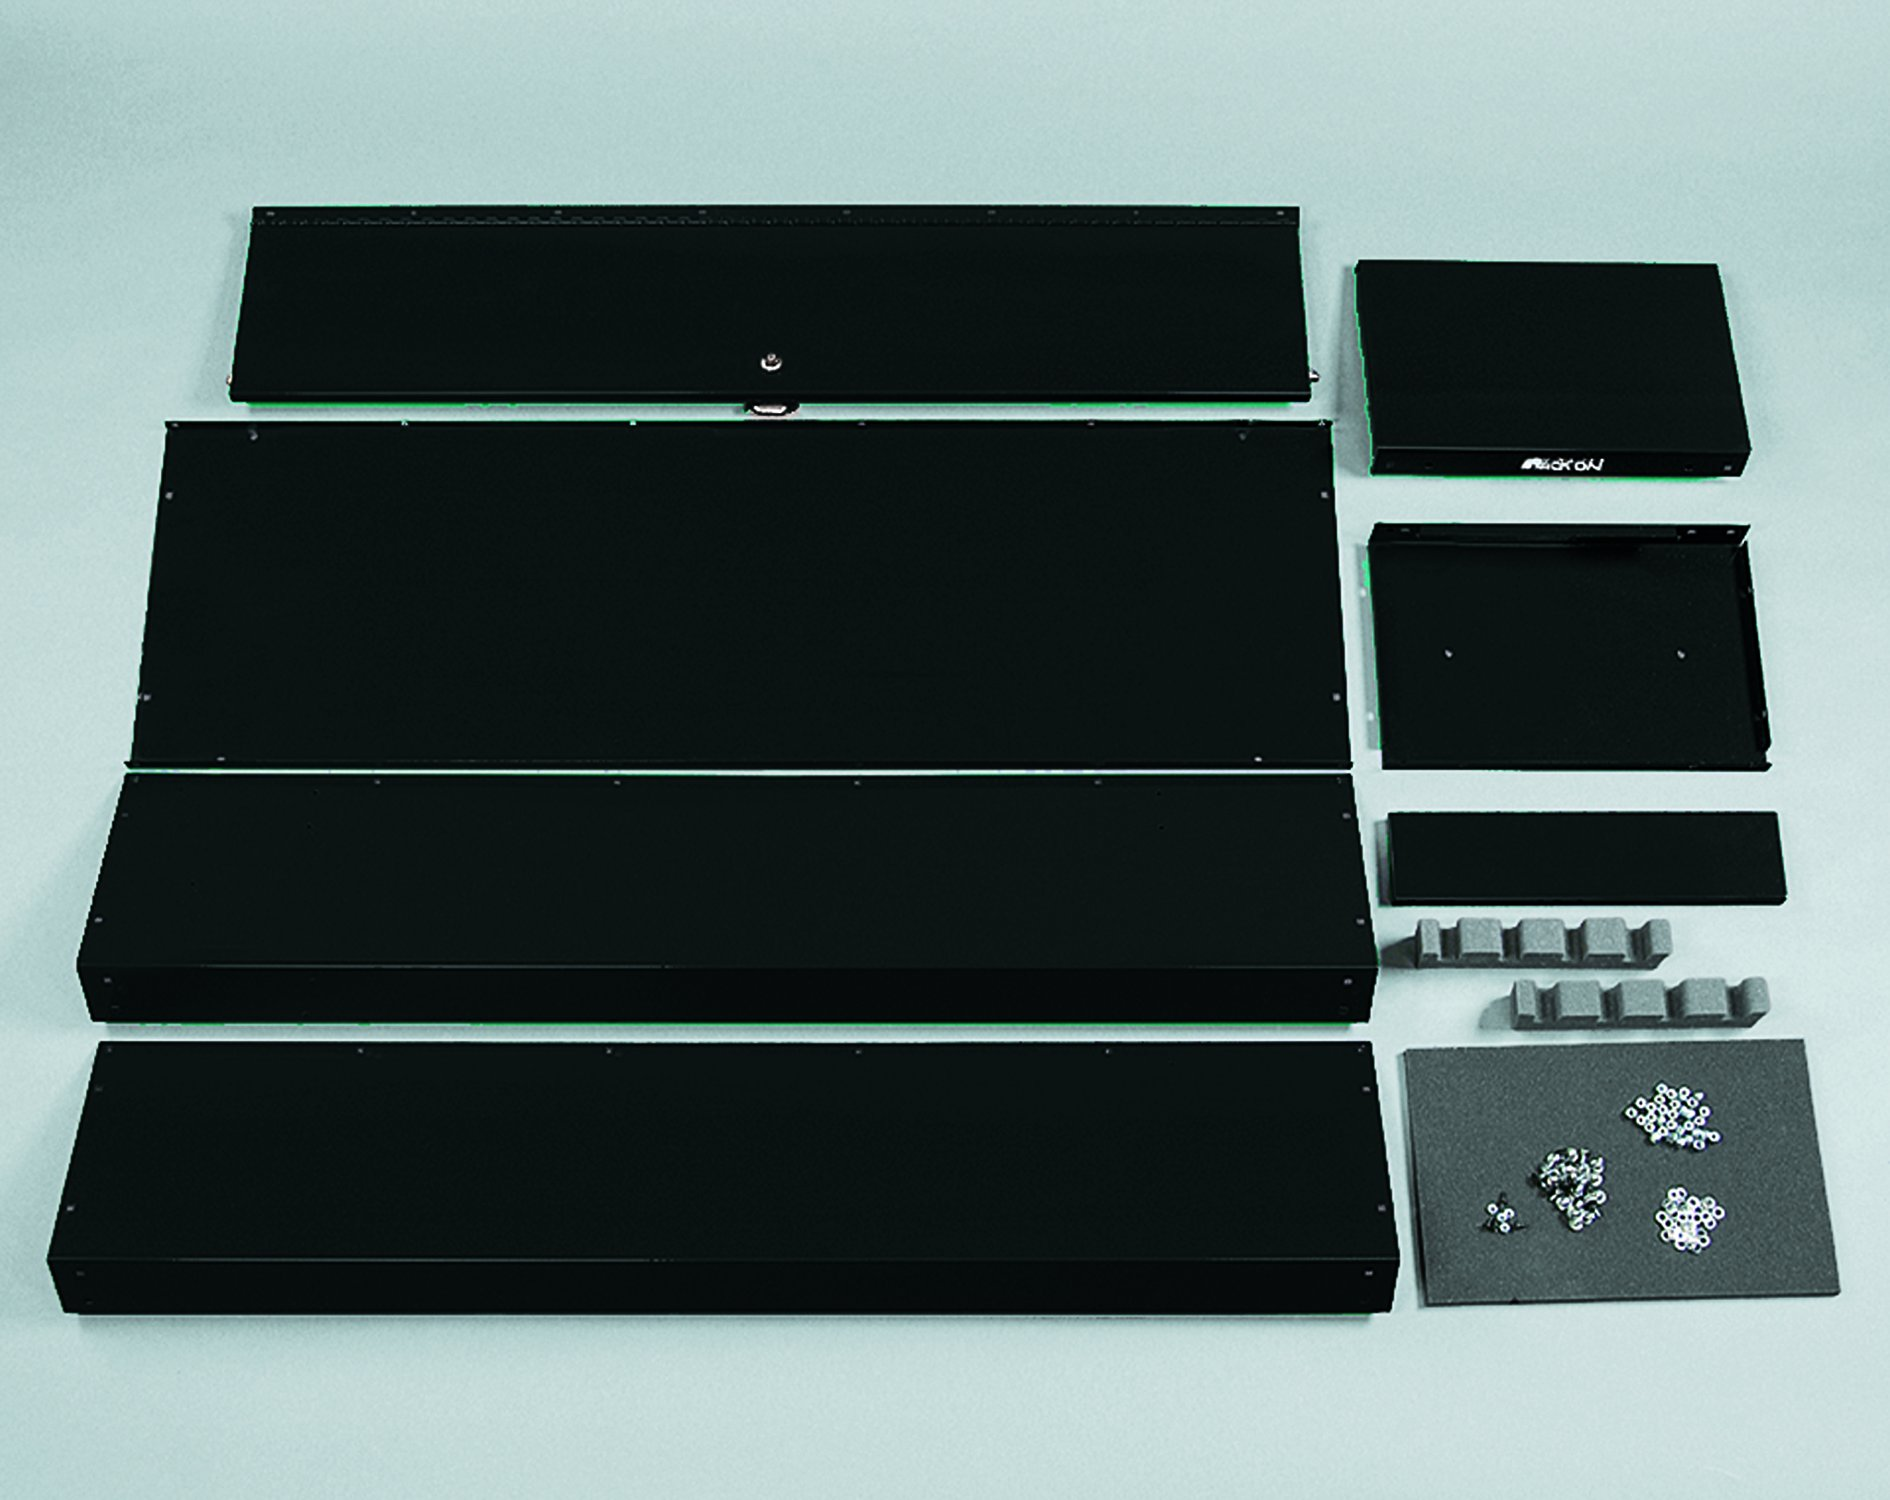 Stack-On GCB-8RTA Steel 8-Gun Ready to Assemble Security Cabinet, Black by Stack-On